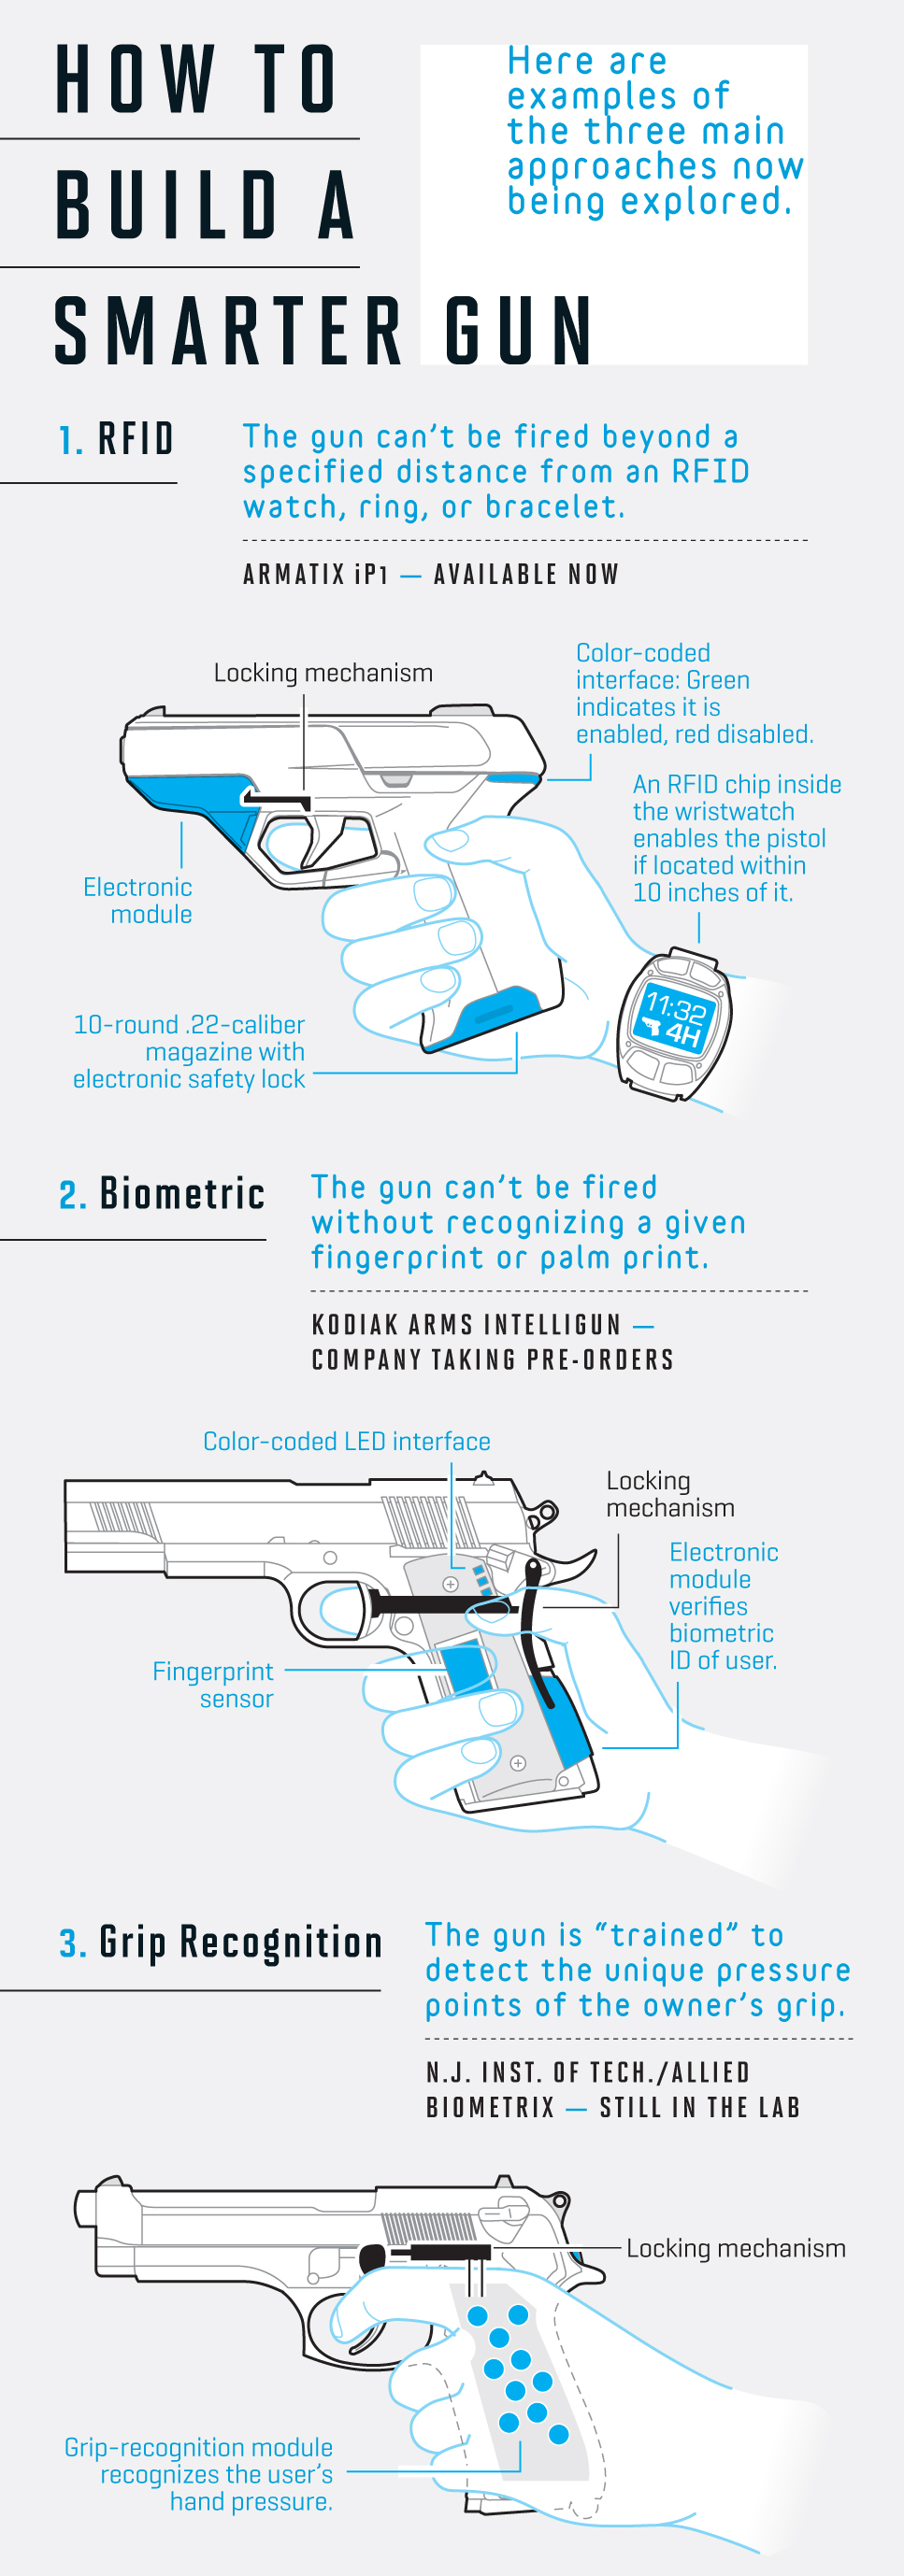 Smart guns: They're ready  Are we? | Fortune